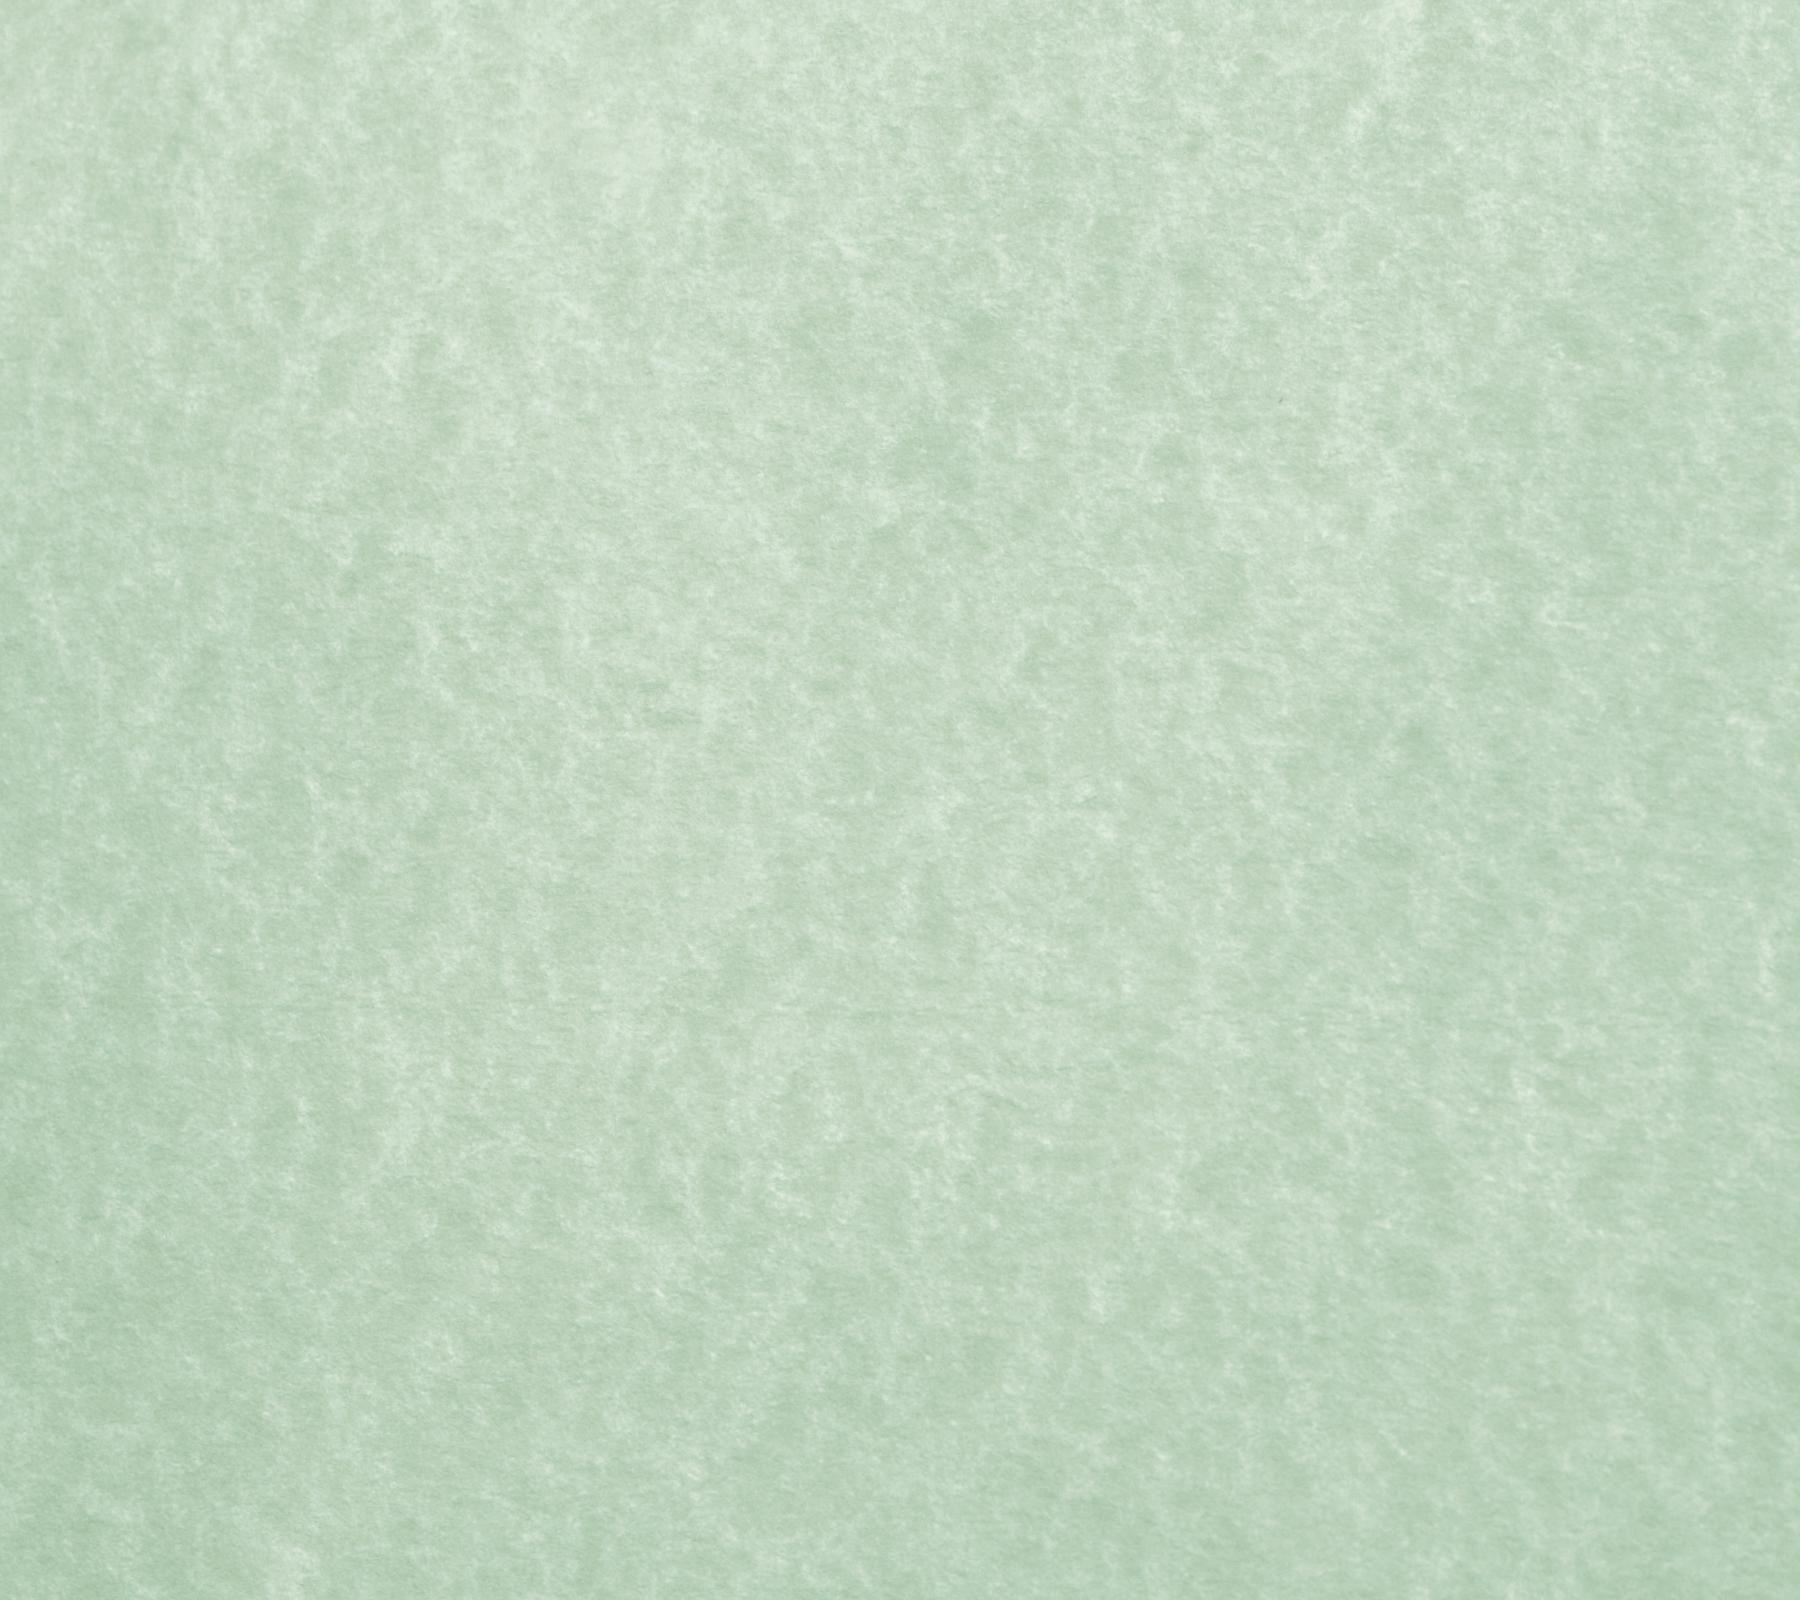 Sage Green Parchment Paper Background 1800x1600 Background ... Christening Background For Baby Girl Plain